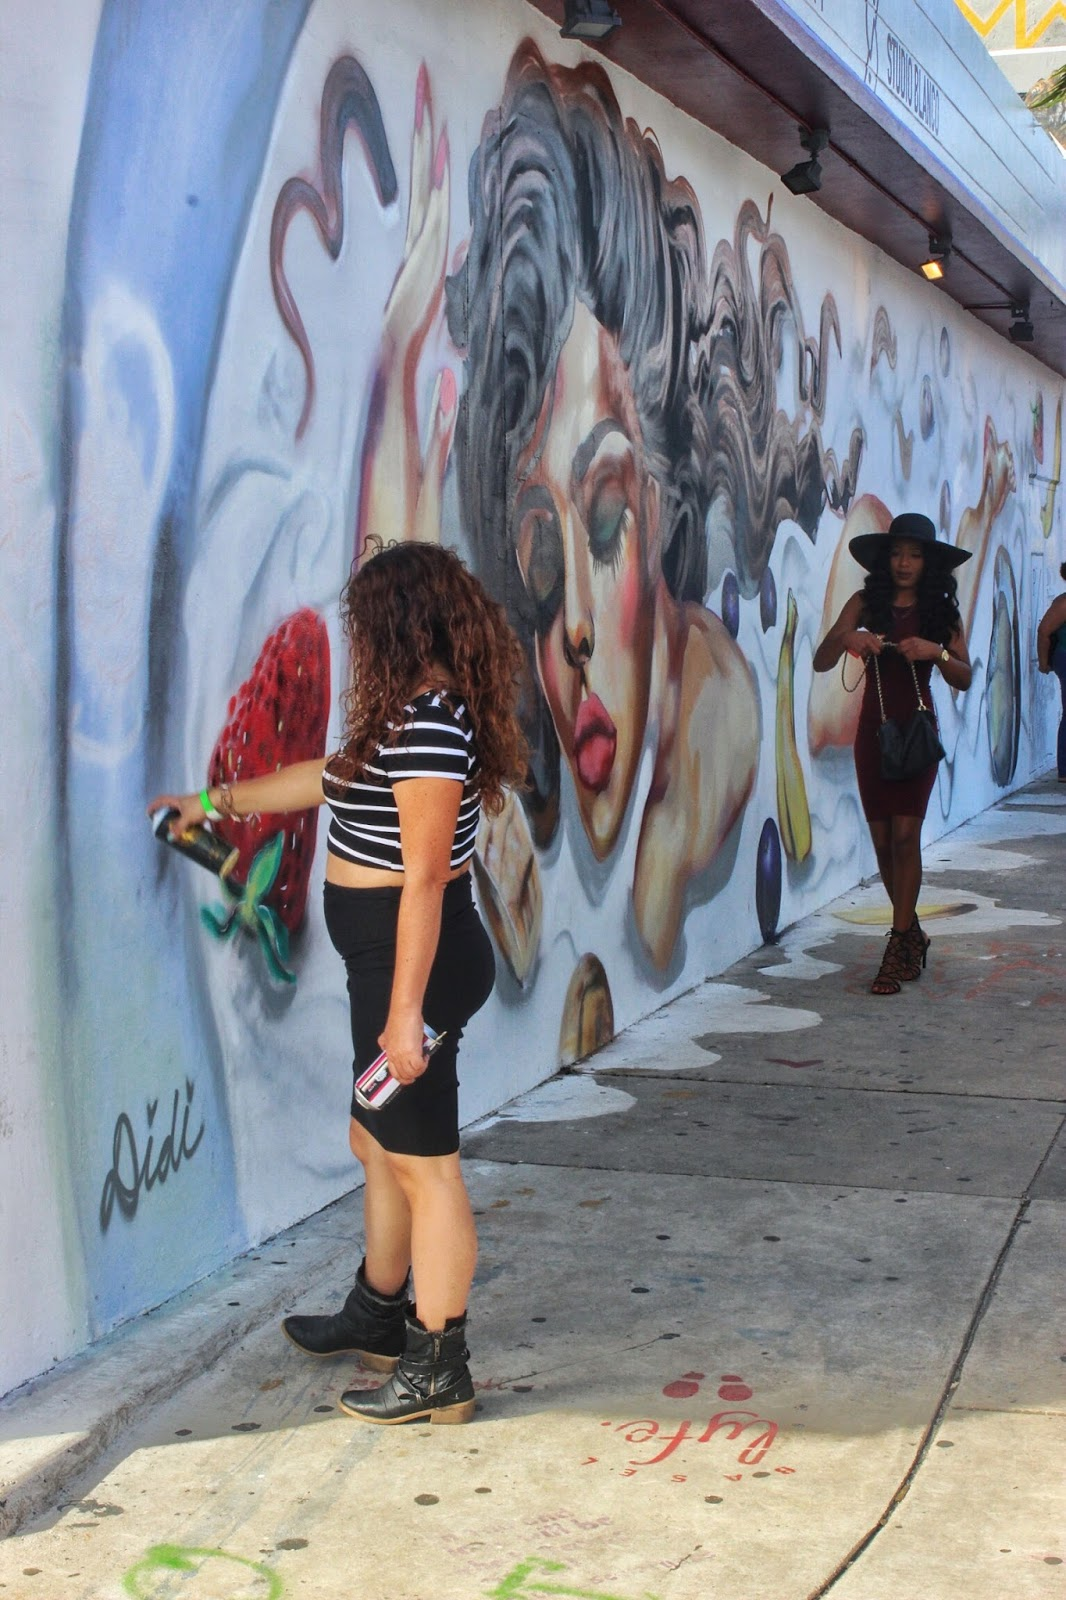 miami-wynwood-daiana-didi-graffiti.JPG